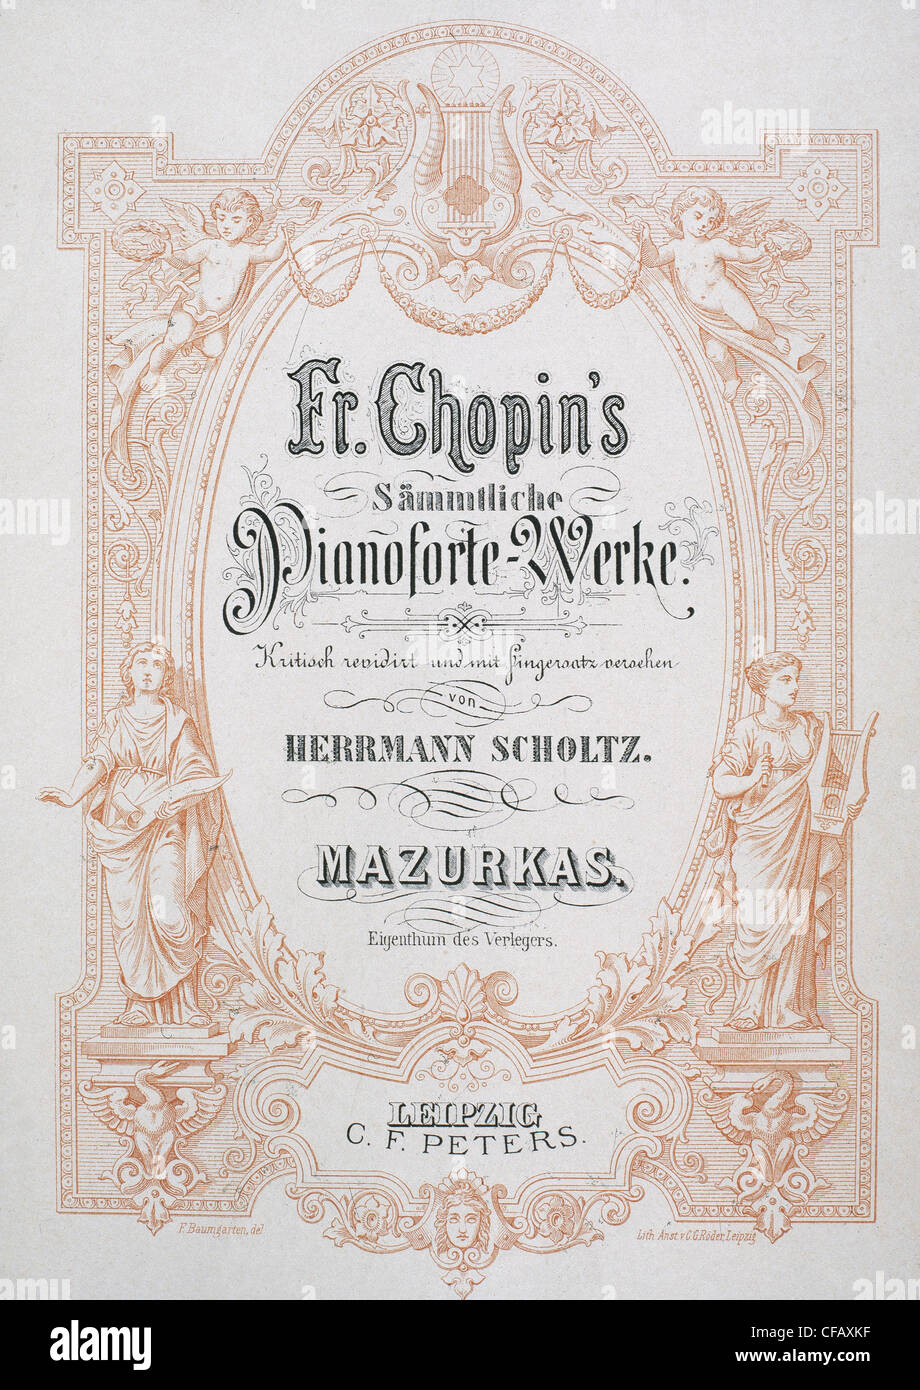 Frederic Chopin (1810-1849). Polish composer. Frontispiece of a mazurka for the pianoforte. - Stock Image